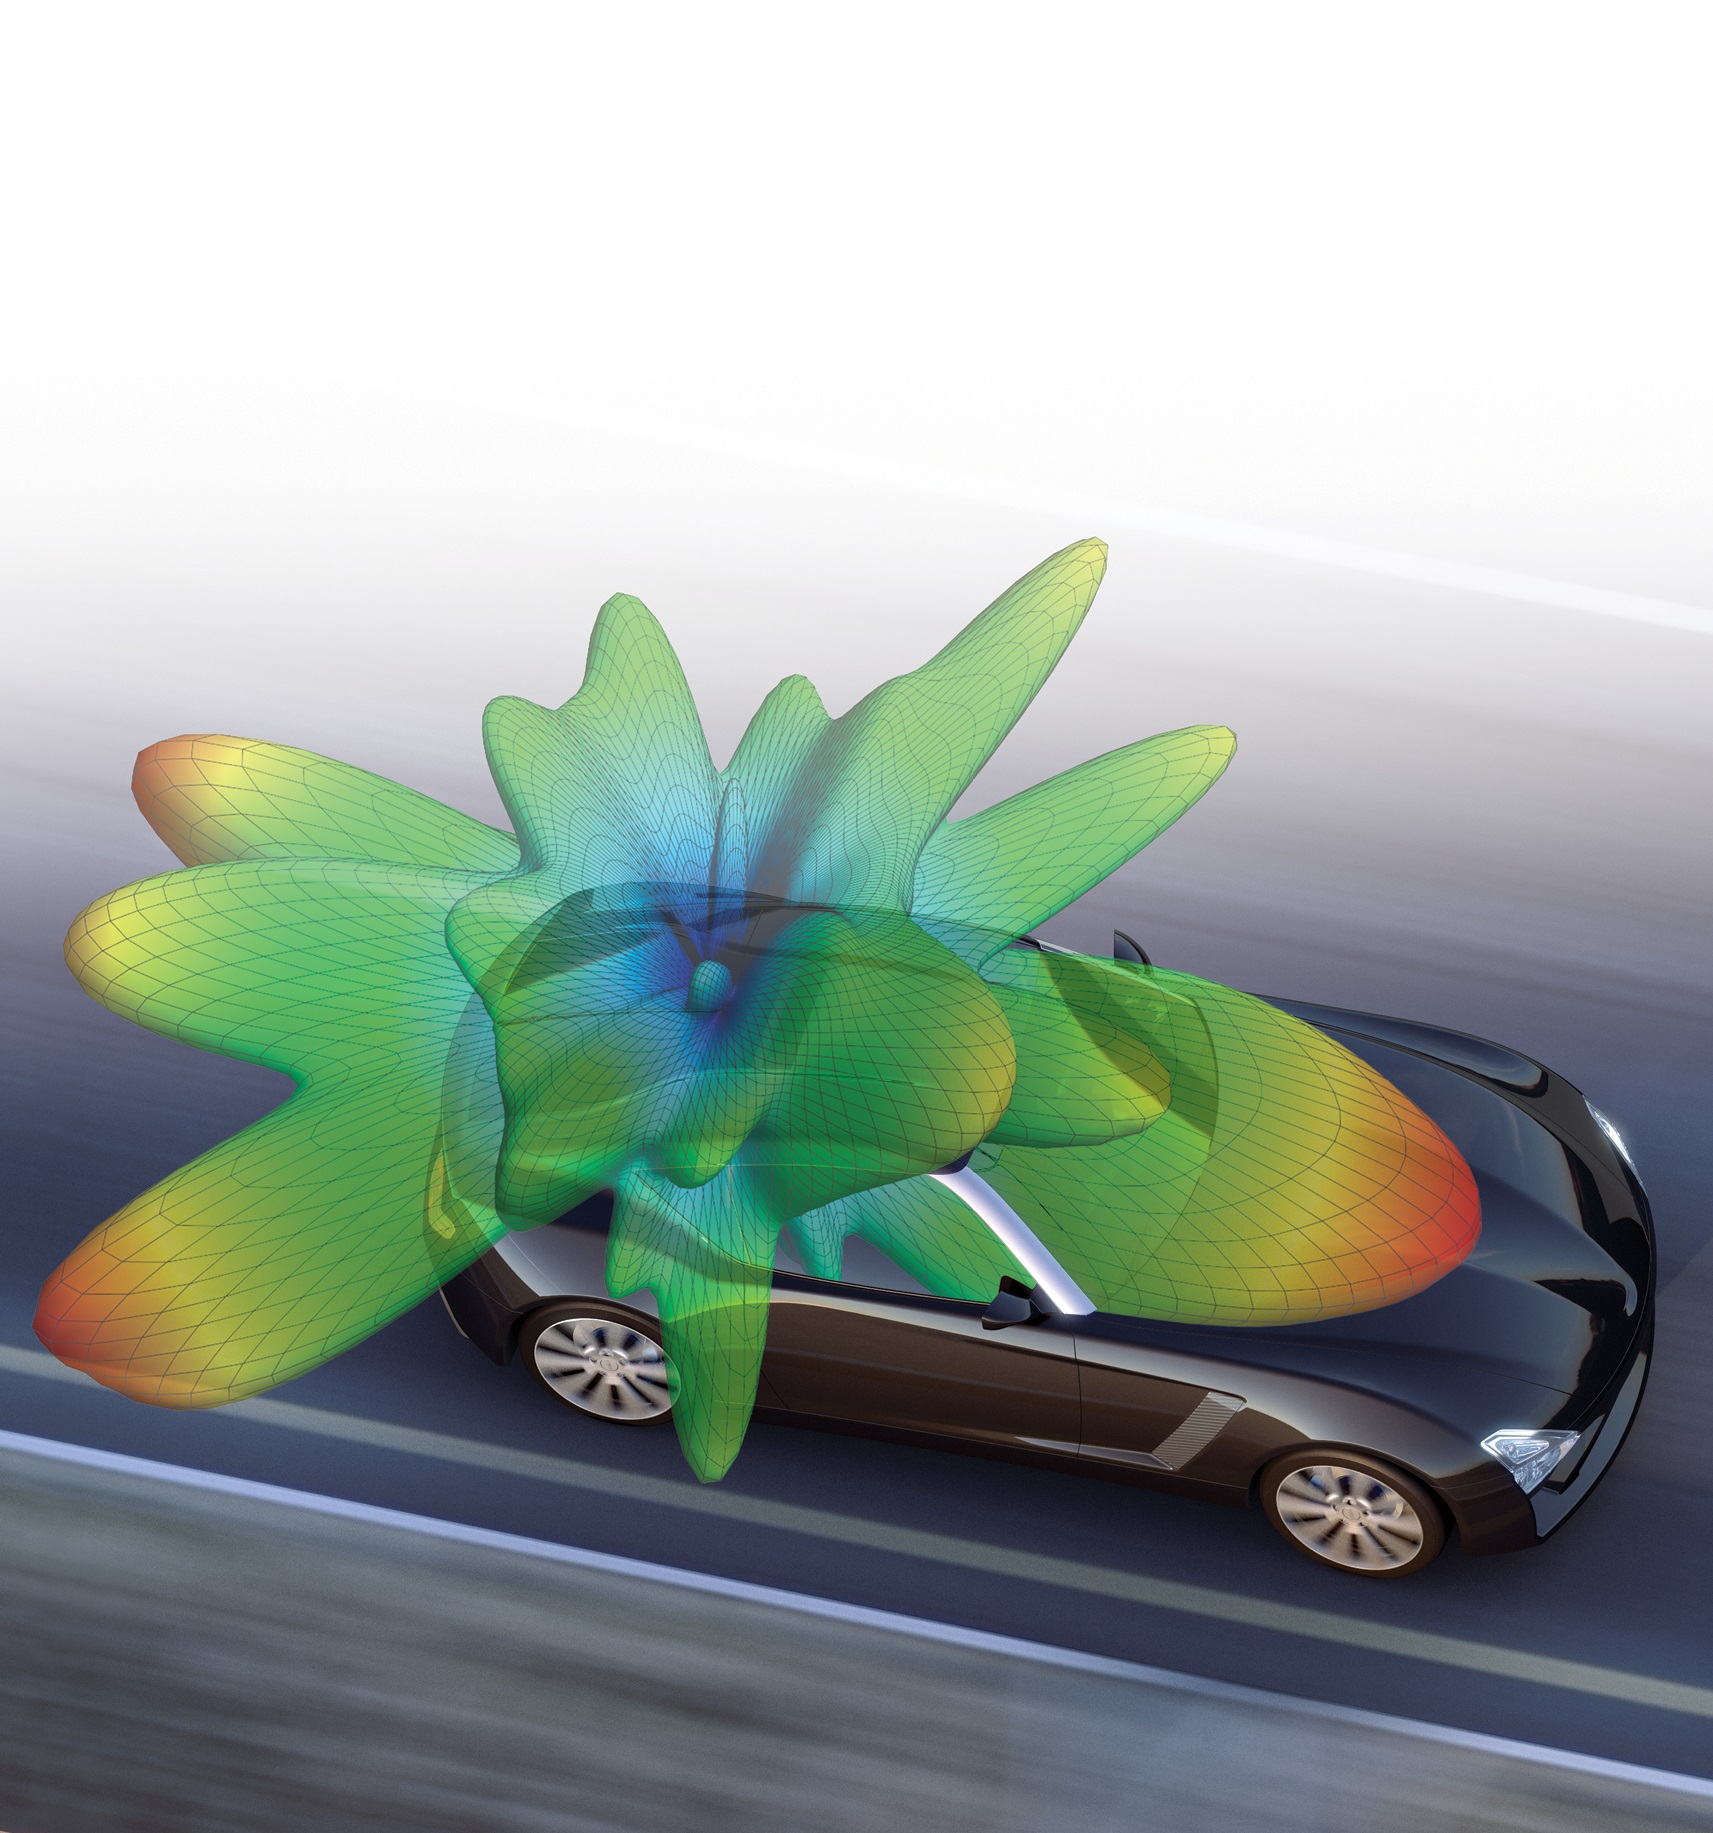 Boosting HyperWorks Further with Electromagnetic Simulation